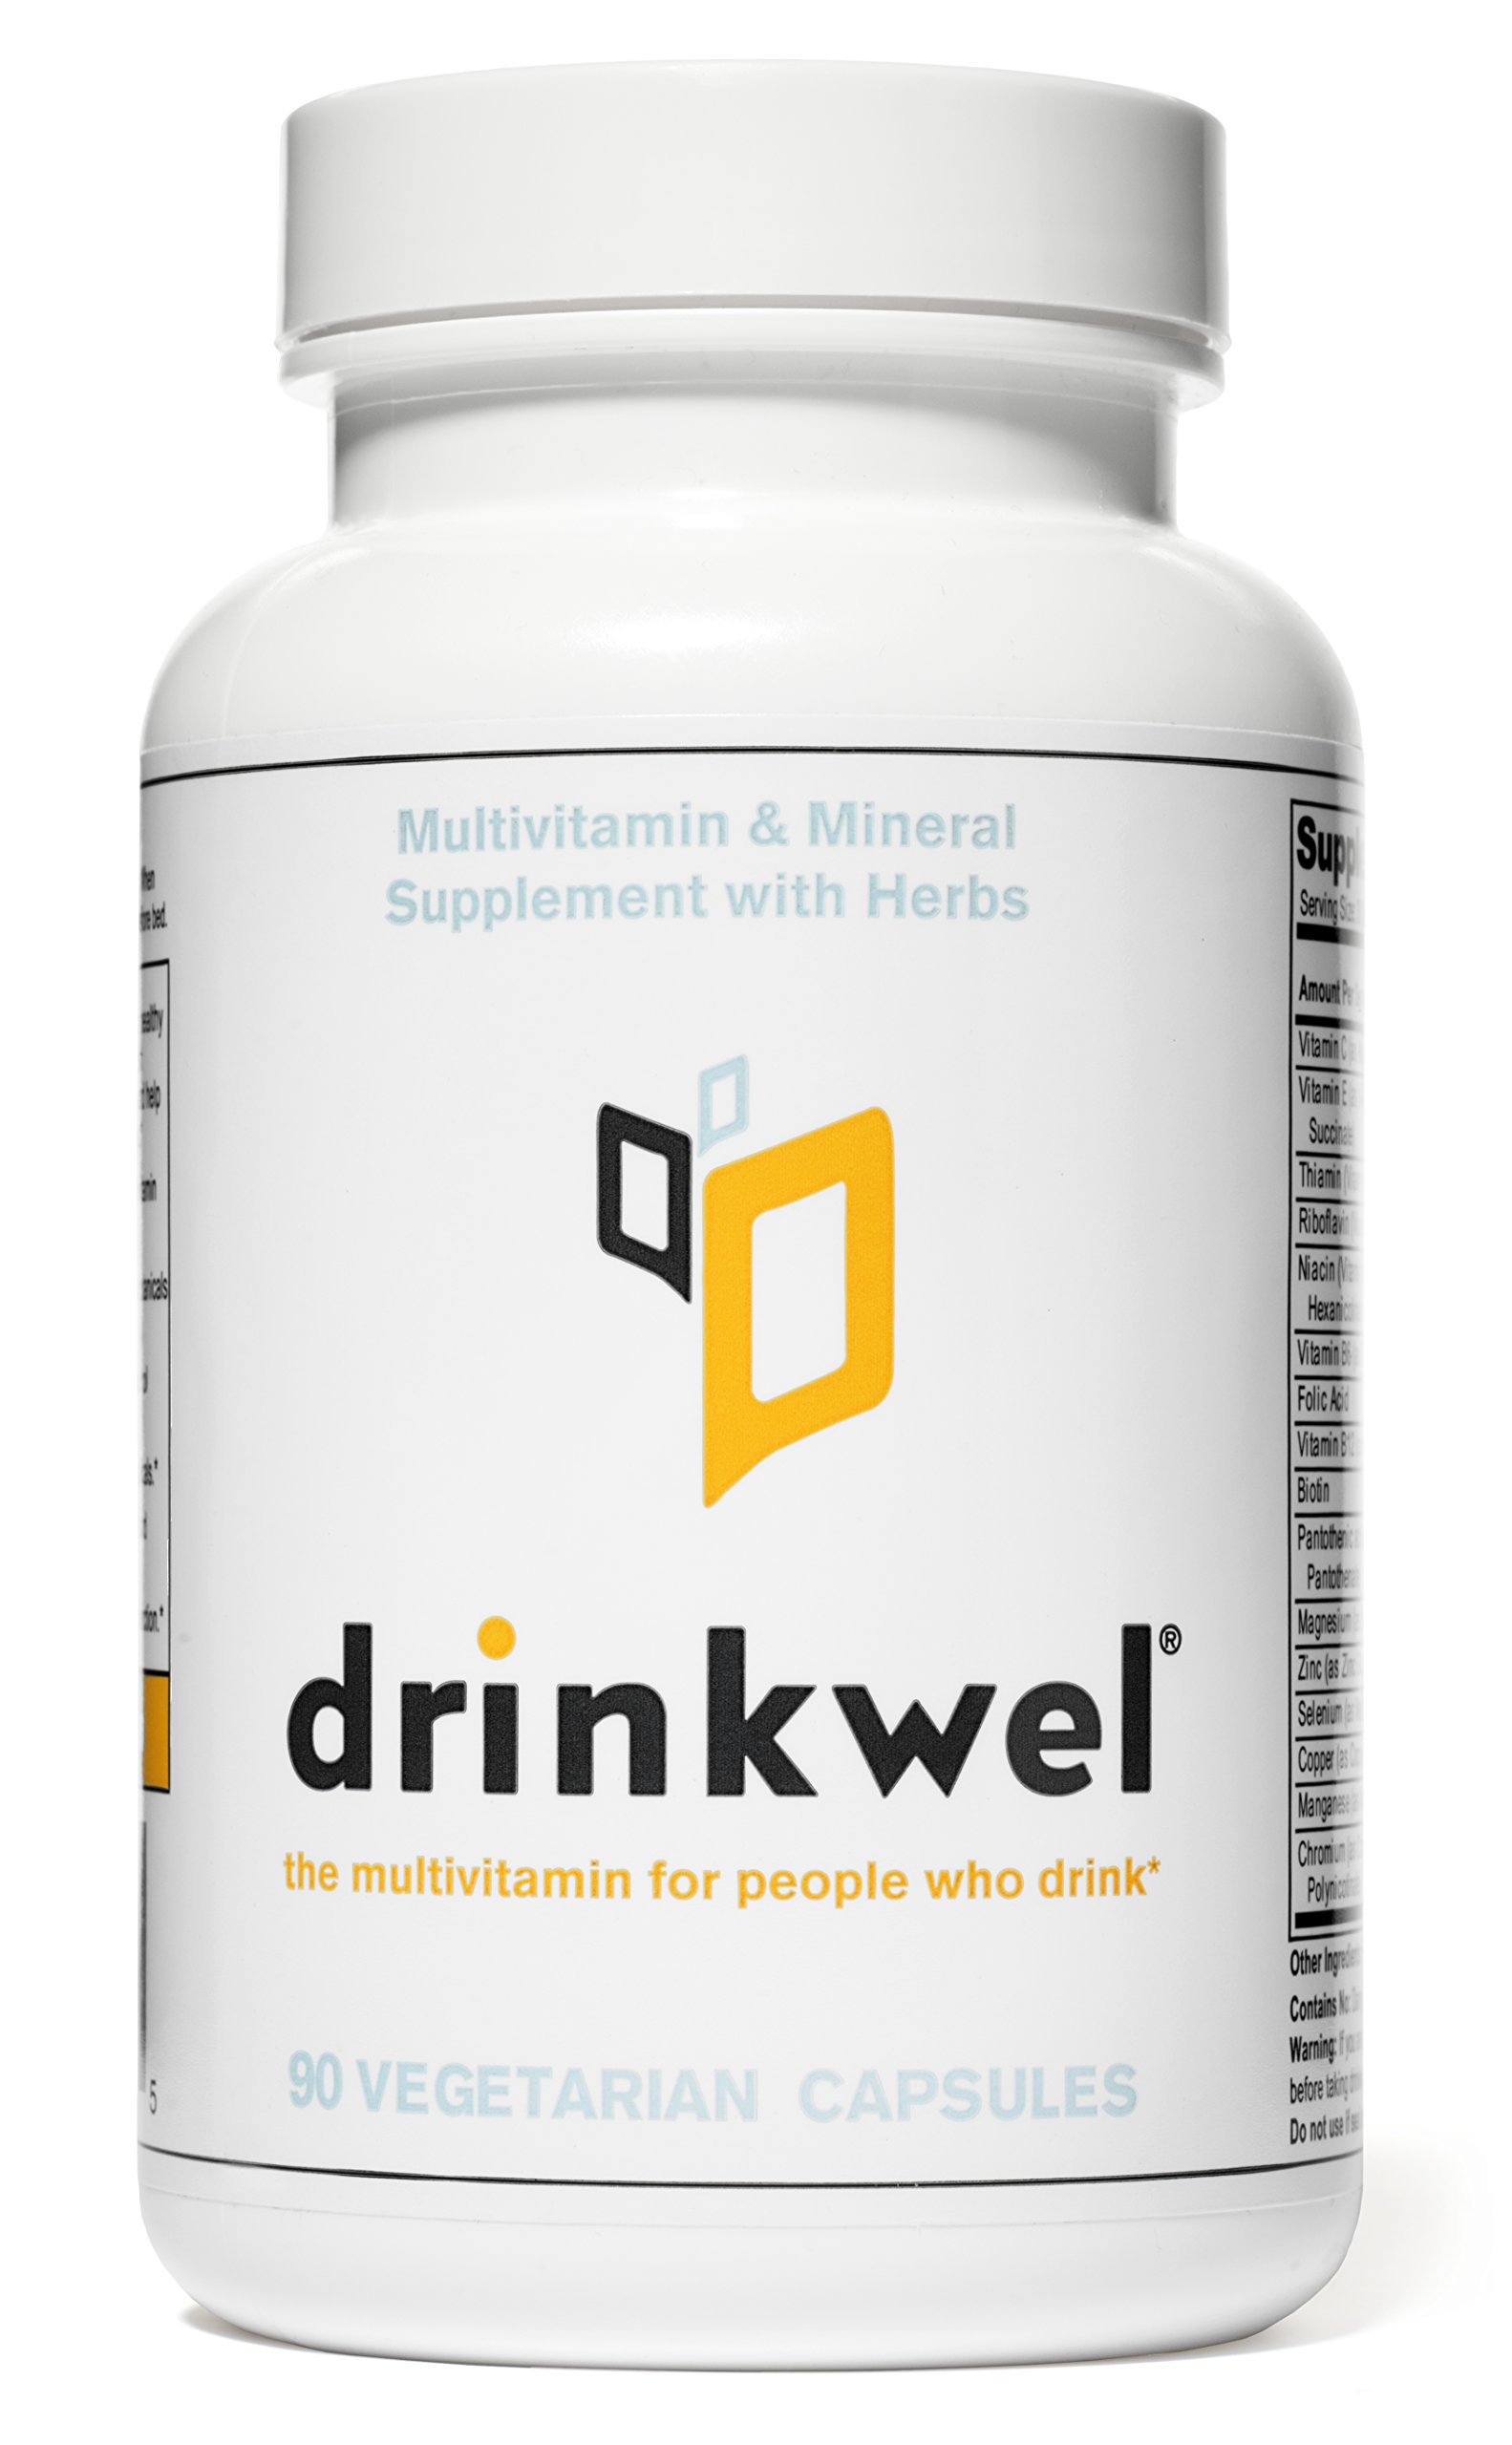 Drinkwel for Hangovers, Nutrient Replenishment & Liver Support (90 Vegetarian Capsules with Organic Milk Thistle, N-acetyl Cysteine, Alpha Lipoic Acid, and DHM) (1 Bottle)